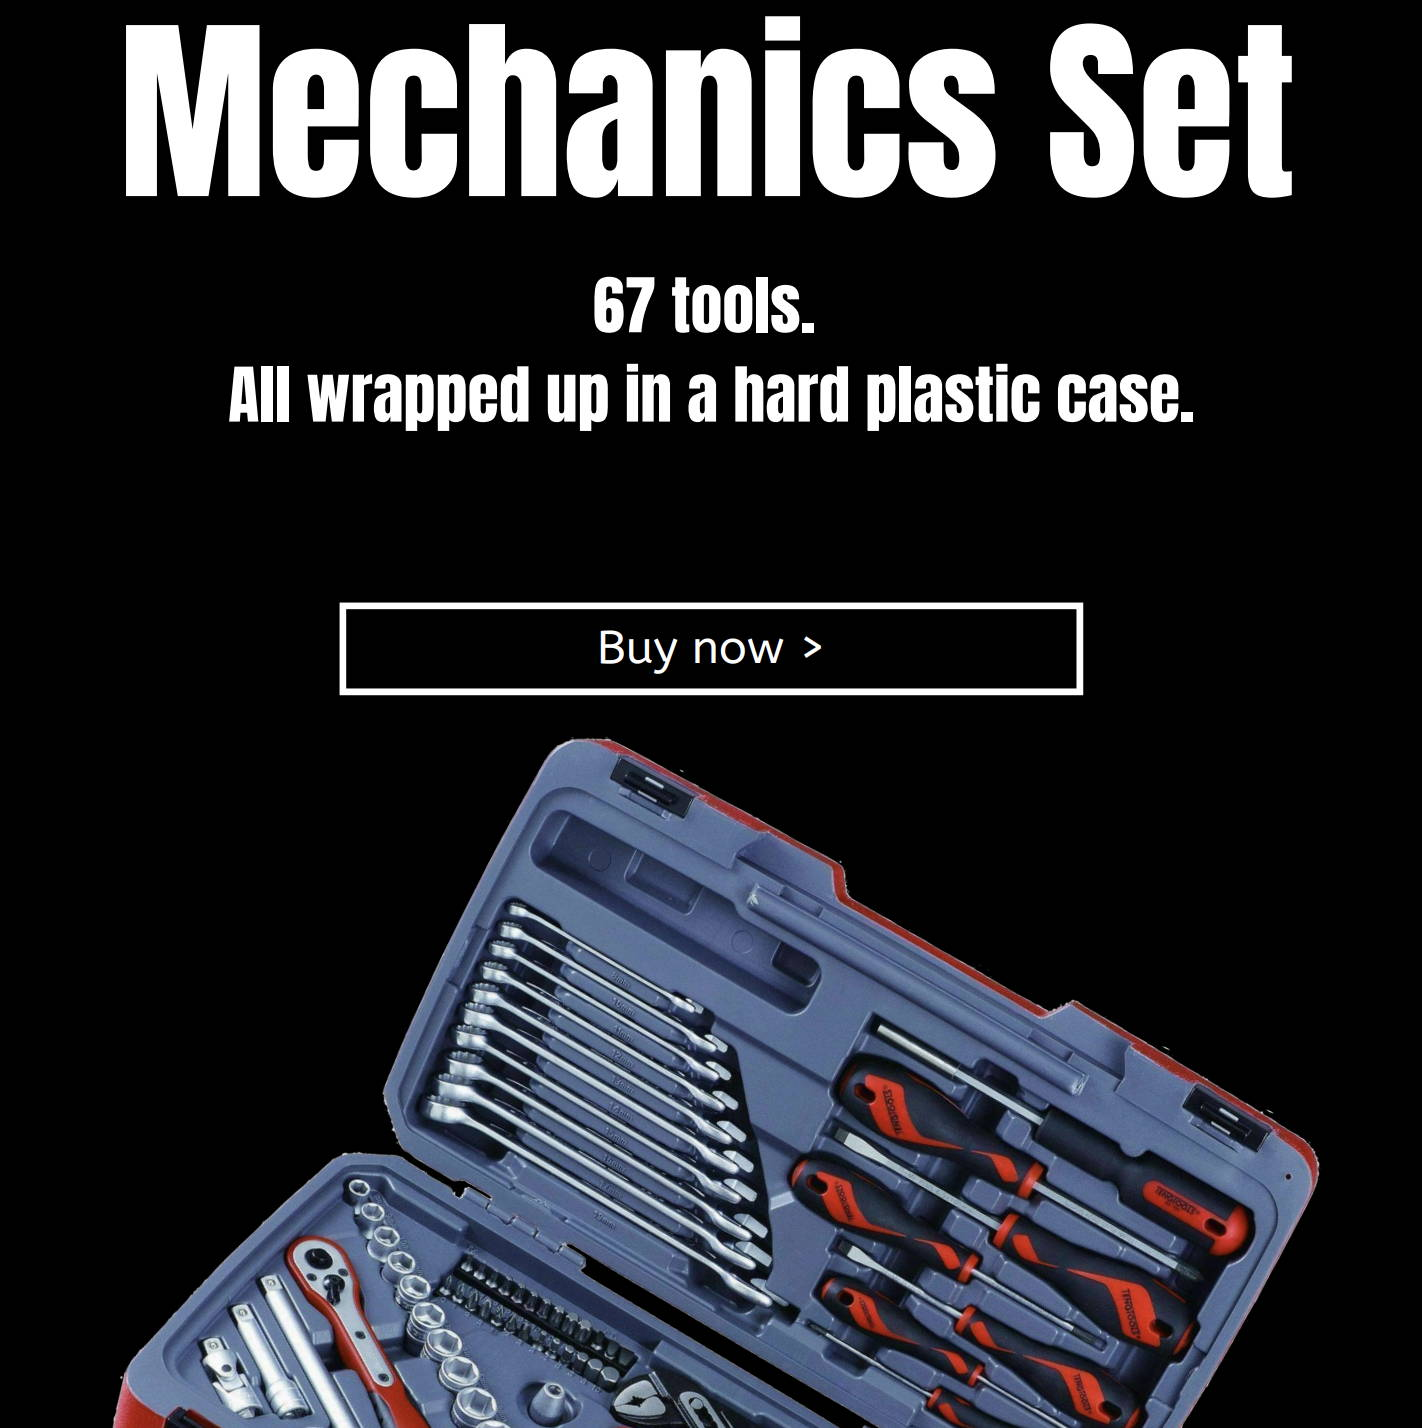 Mechanics Set. 67 tools. All wrapped up in a hard plastic case.